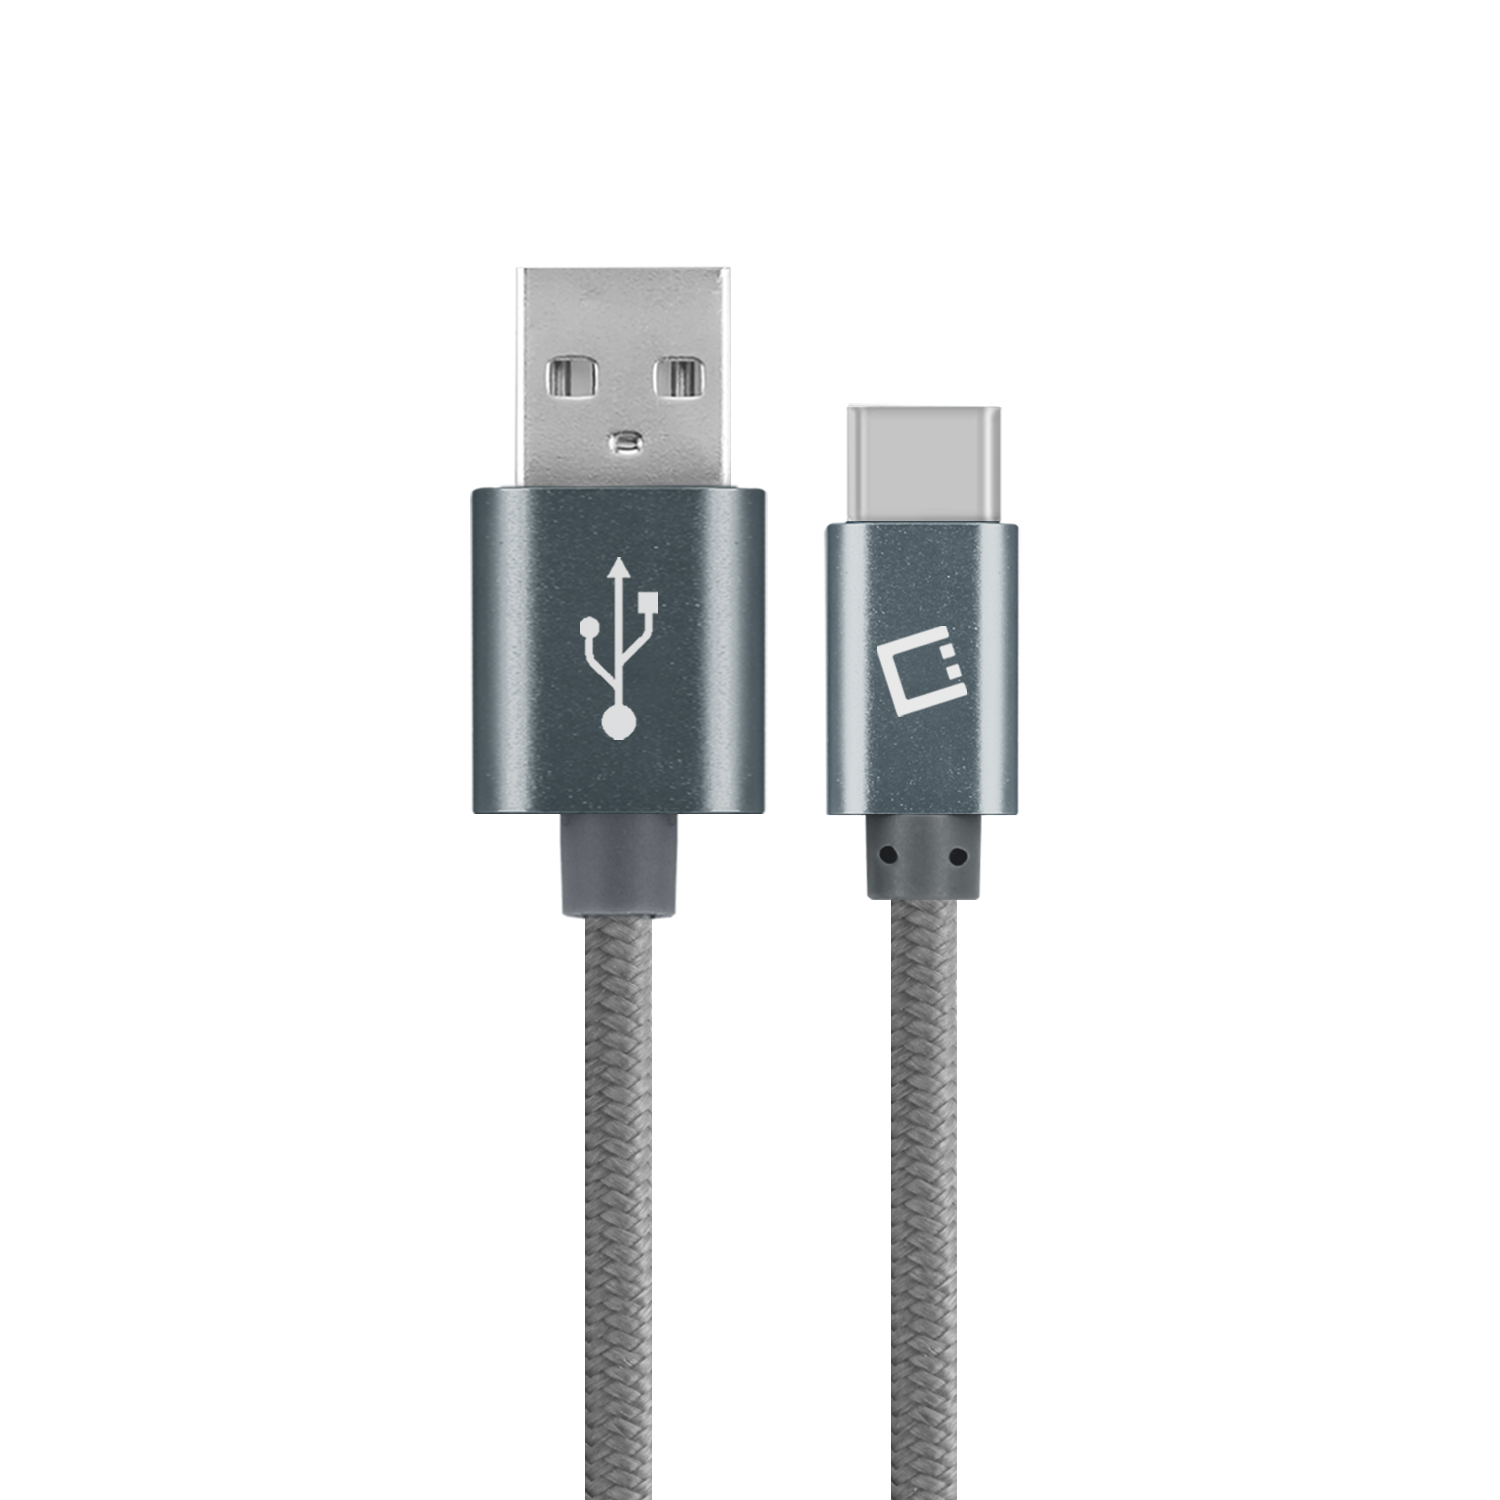 Samsung Galaxy S10 Plus USB Type-C To Type-A Braided Data Power Cable Grey 10ft Braided